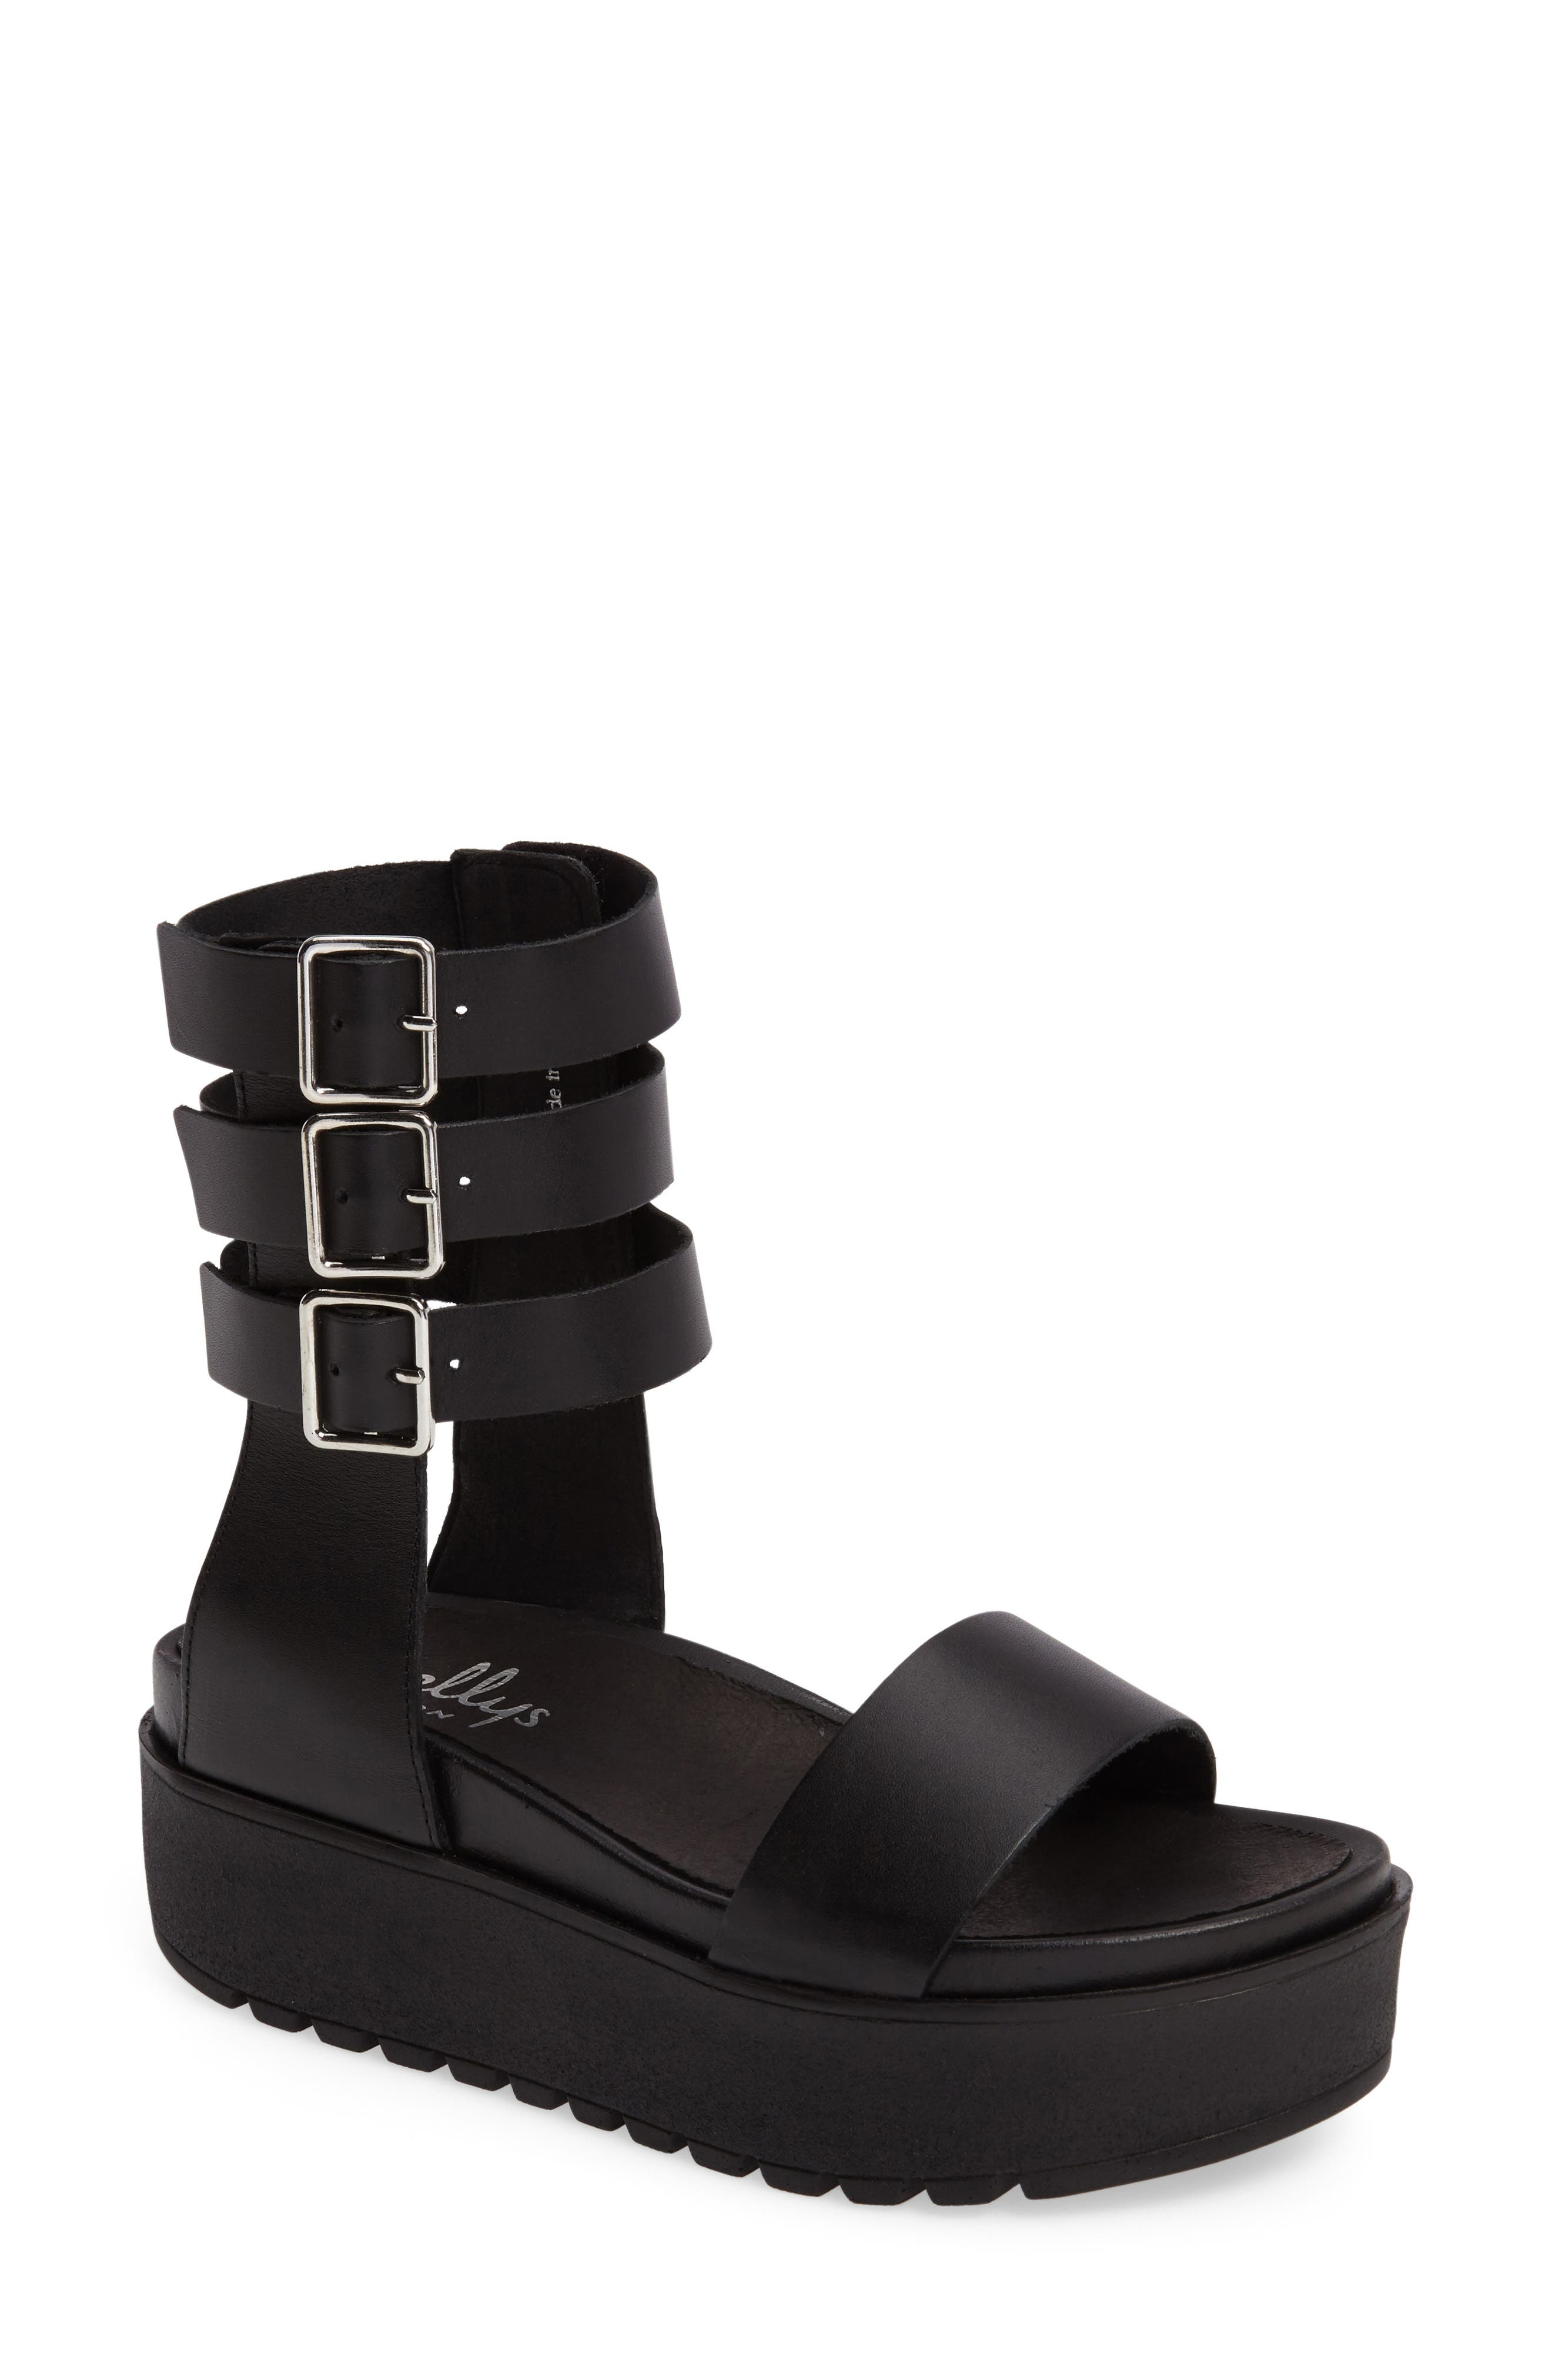 SHELLYS LONDON Kegan Platform Gladiator Sandal